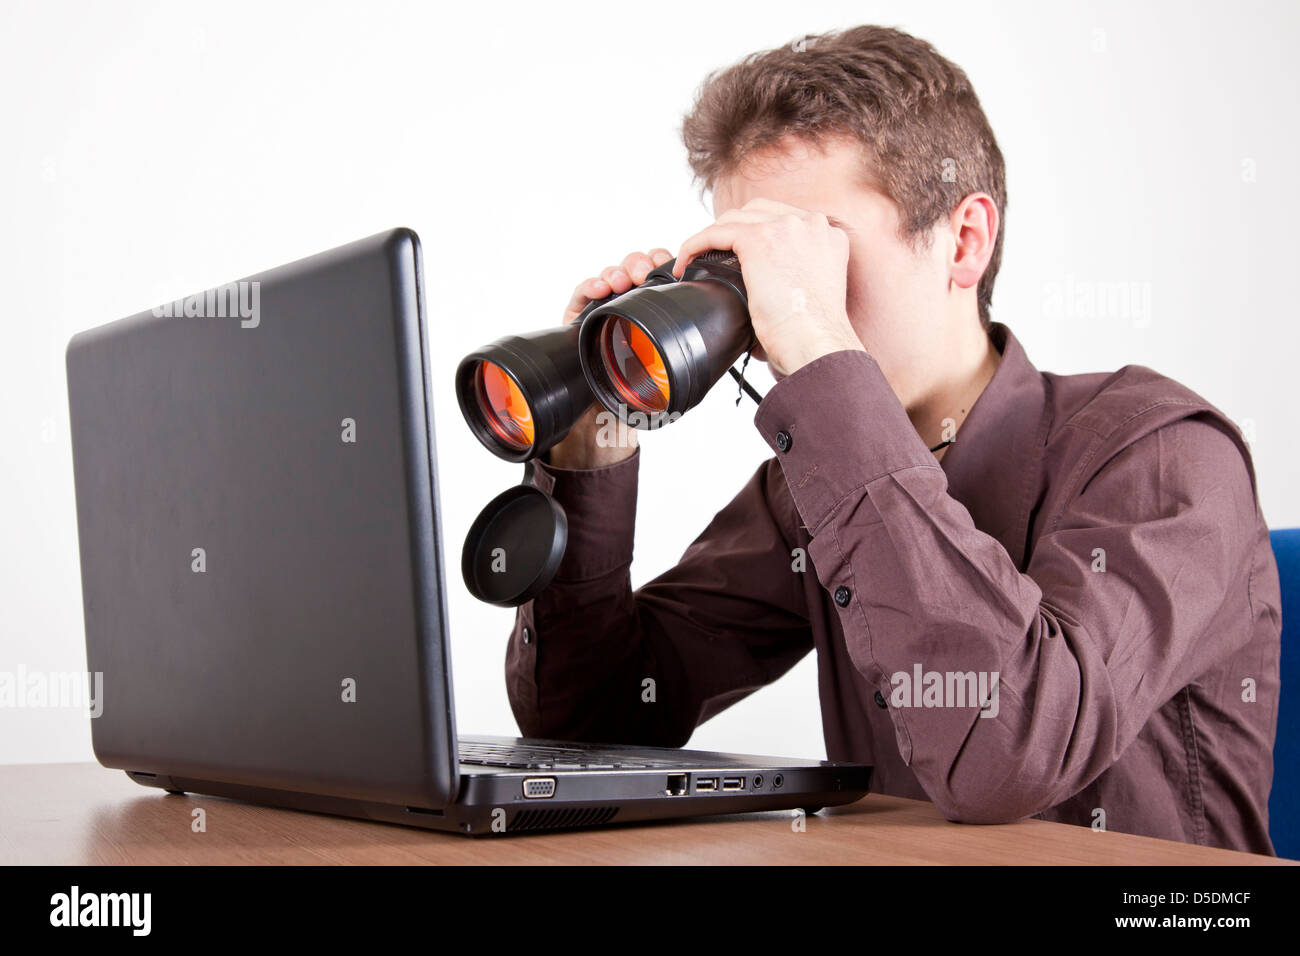 Man Searching On At A Desk With Binoculars On A Computer